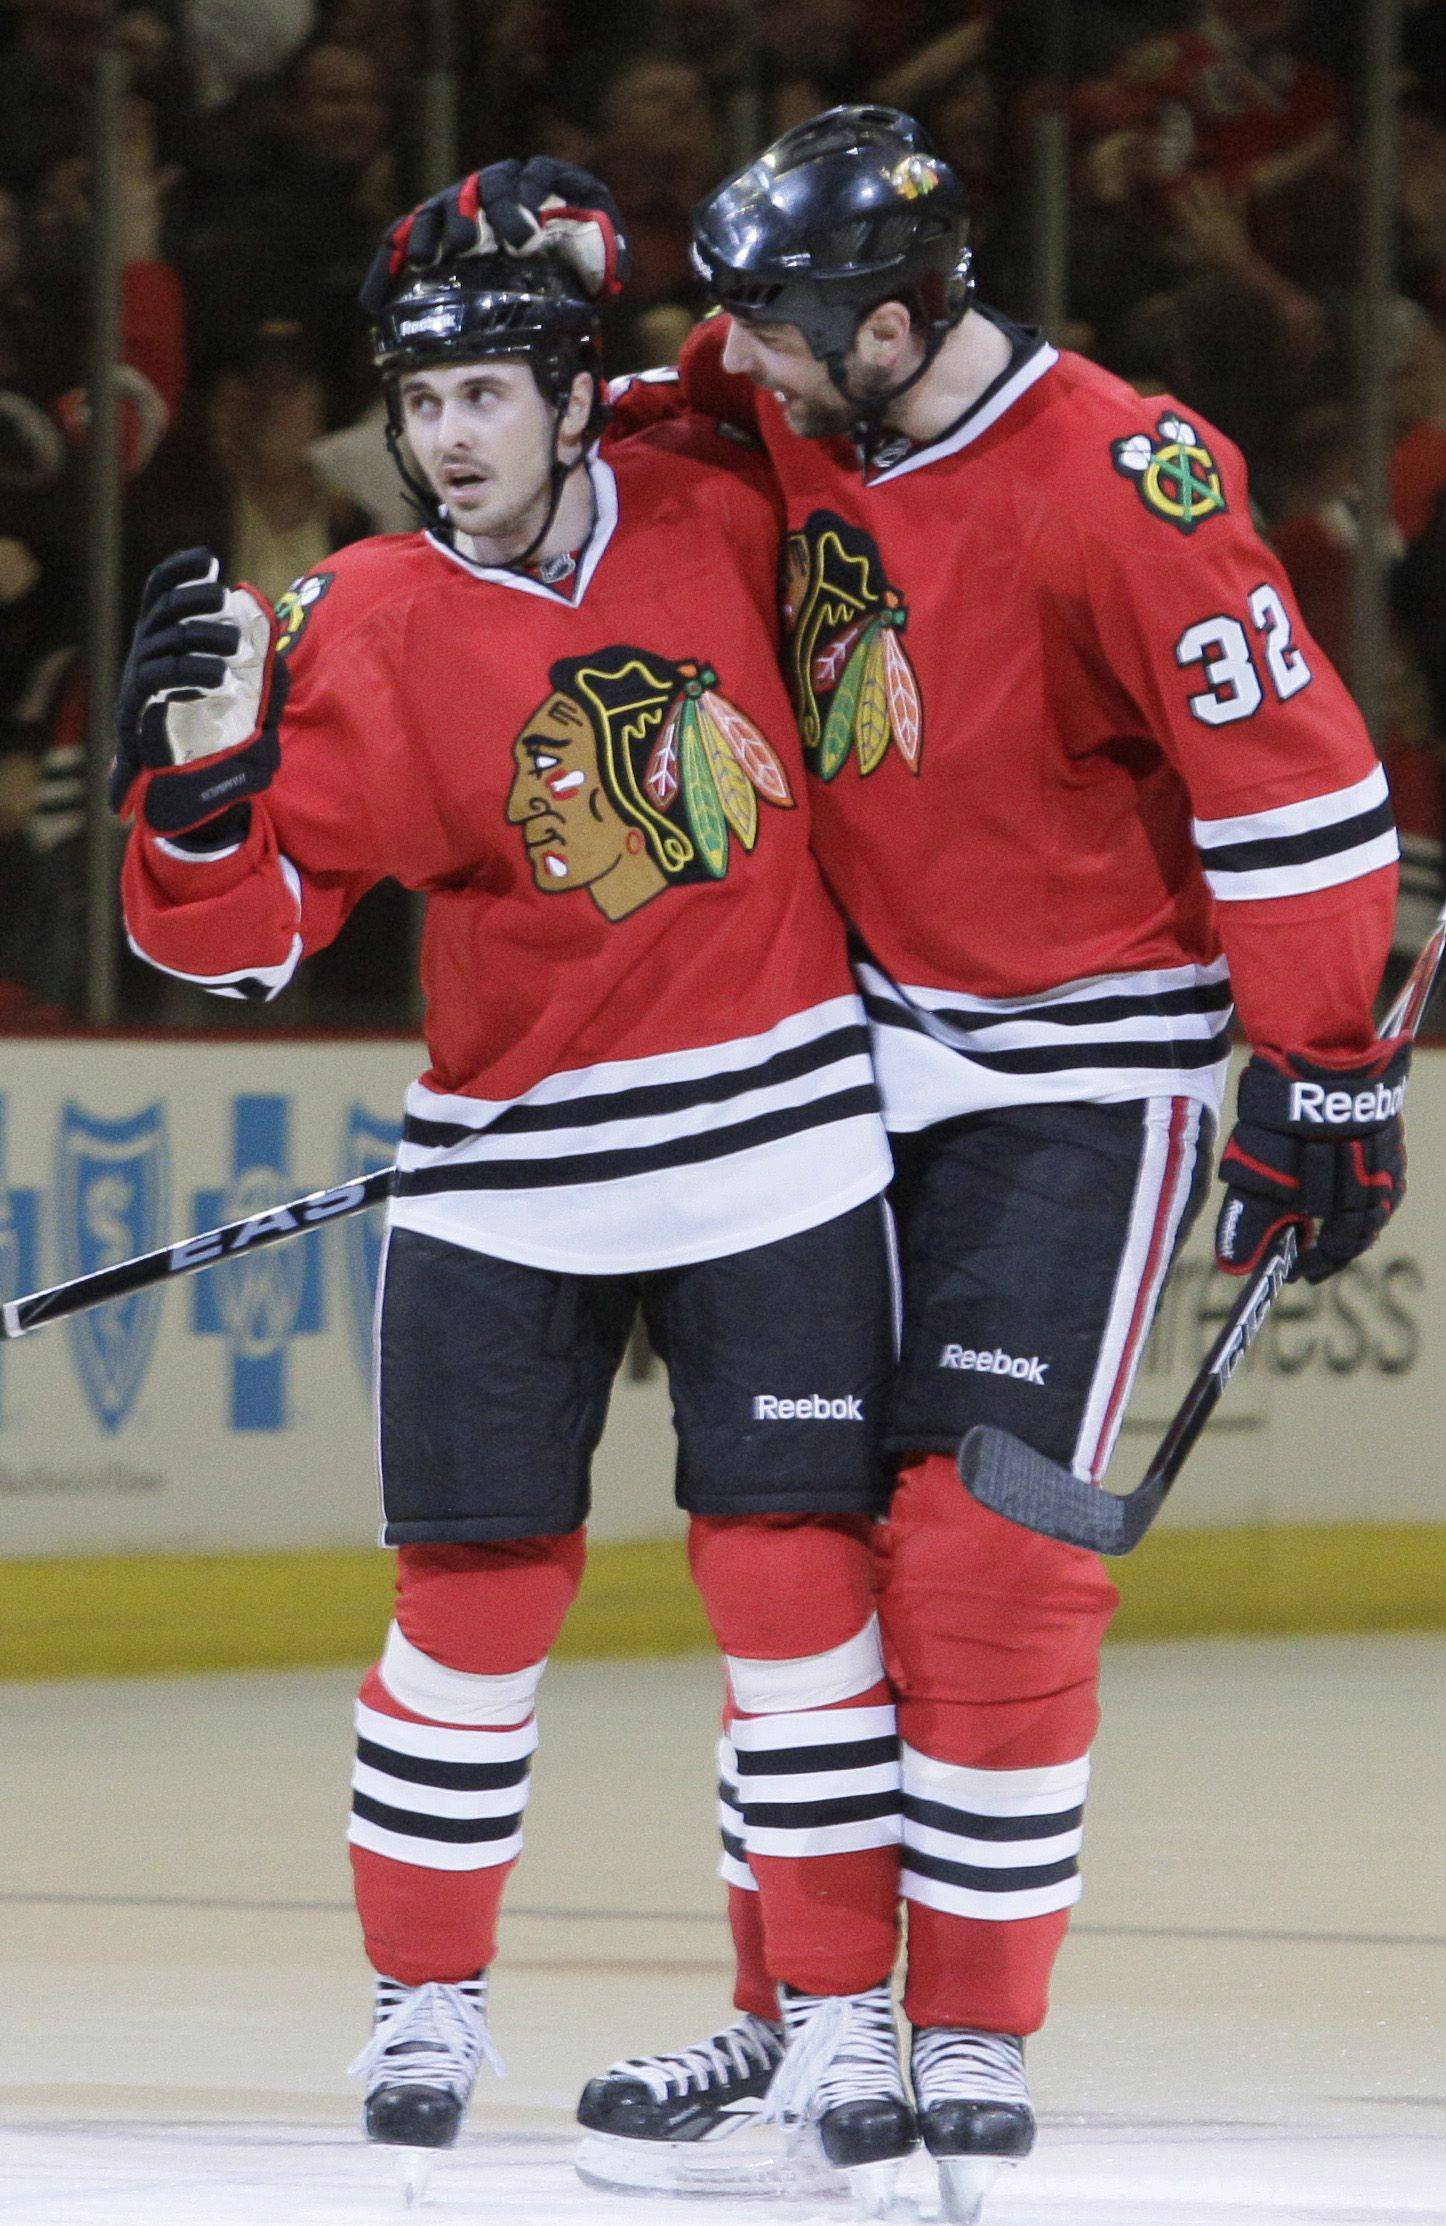 Defenseman John Scott, at right with Blackhawks center Dave Bolland, will play in Game 5 against Vancouver in place of Brent Seabrook, who was ruled out Thursday morning by coach Joel Quenneville.